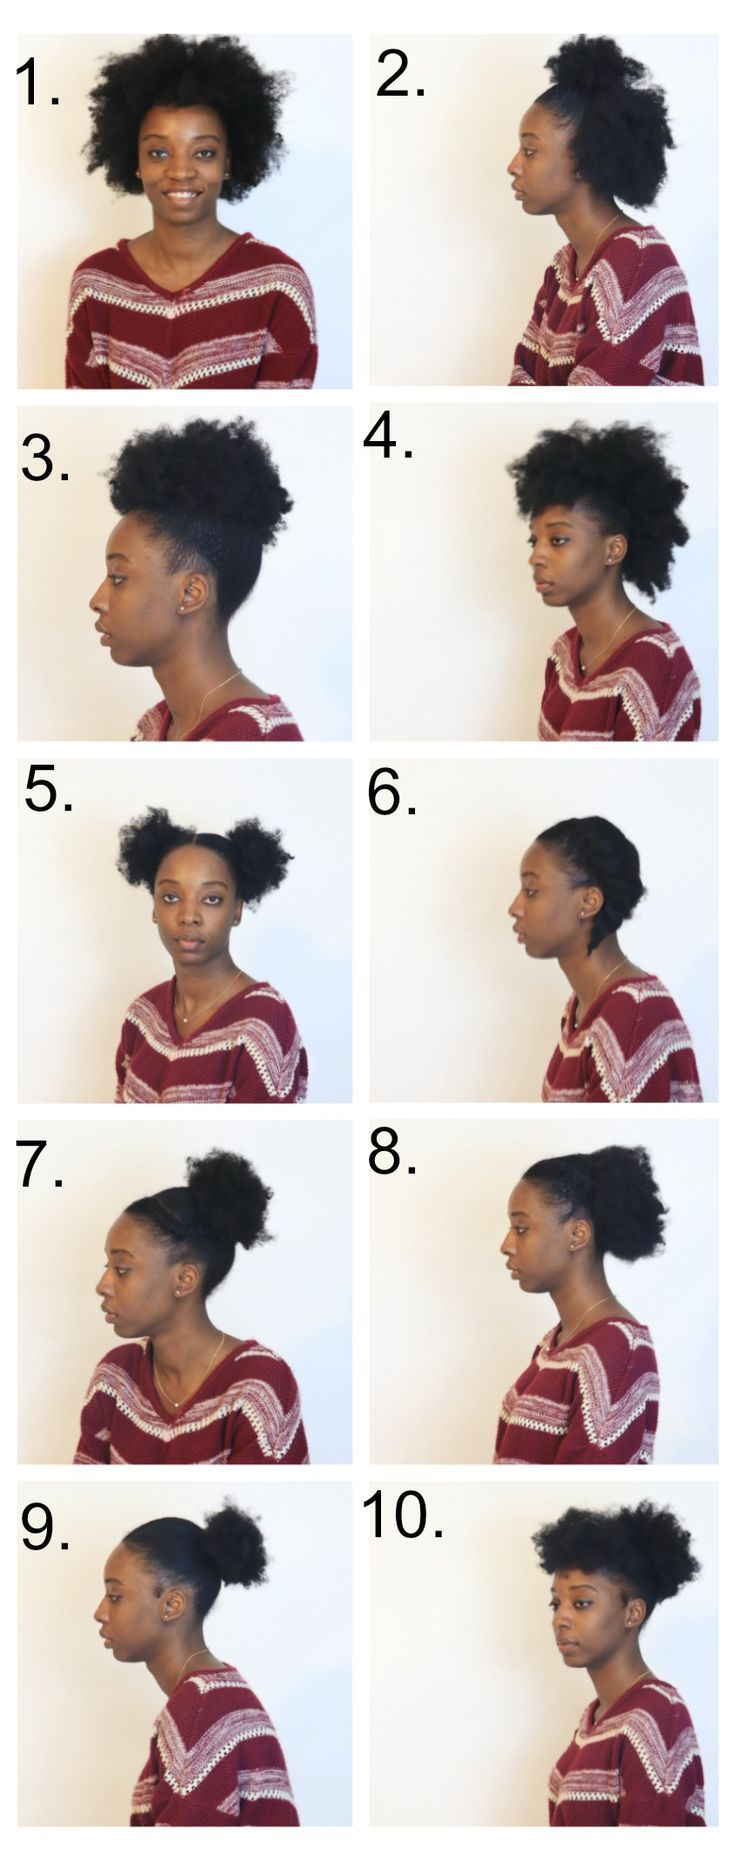 10 Easy Ways To Style Short Natural Hair | Medium natural hair, Easy ...